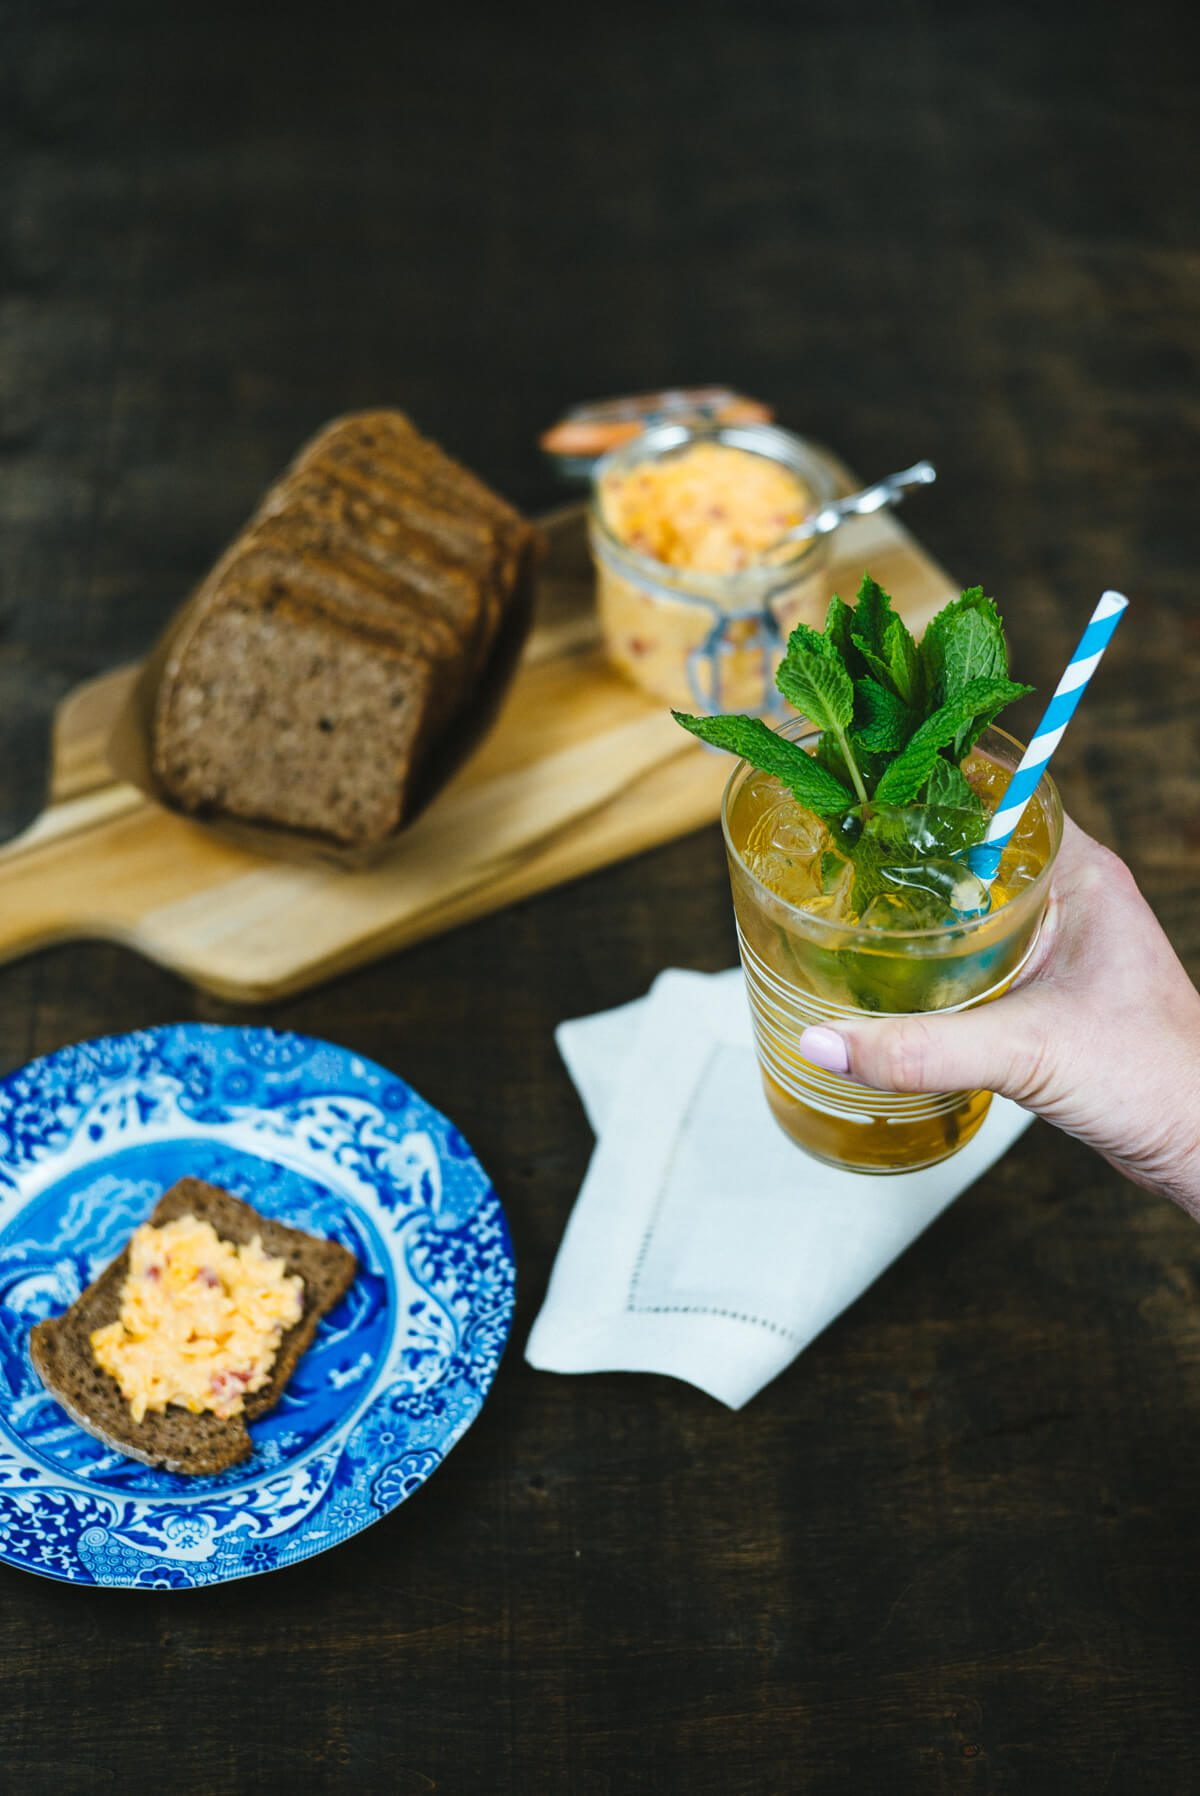 Serving pimento cheese dip and crackers with a mint juleps for the Kentucky Derby.